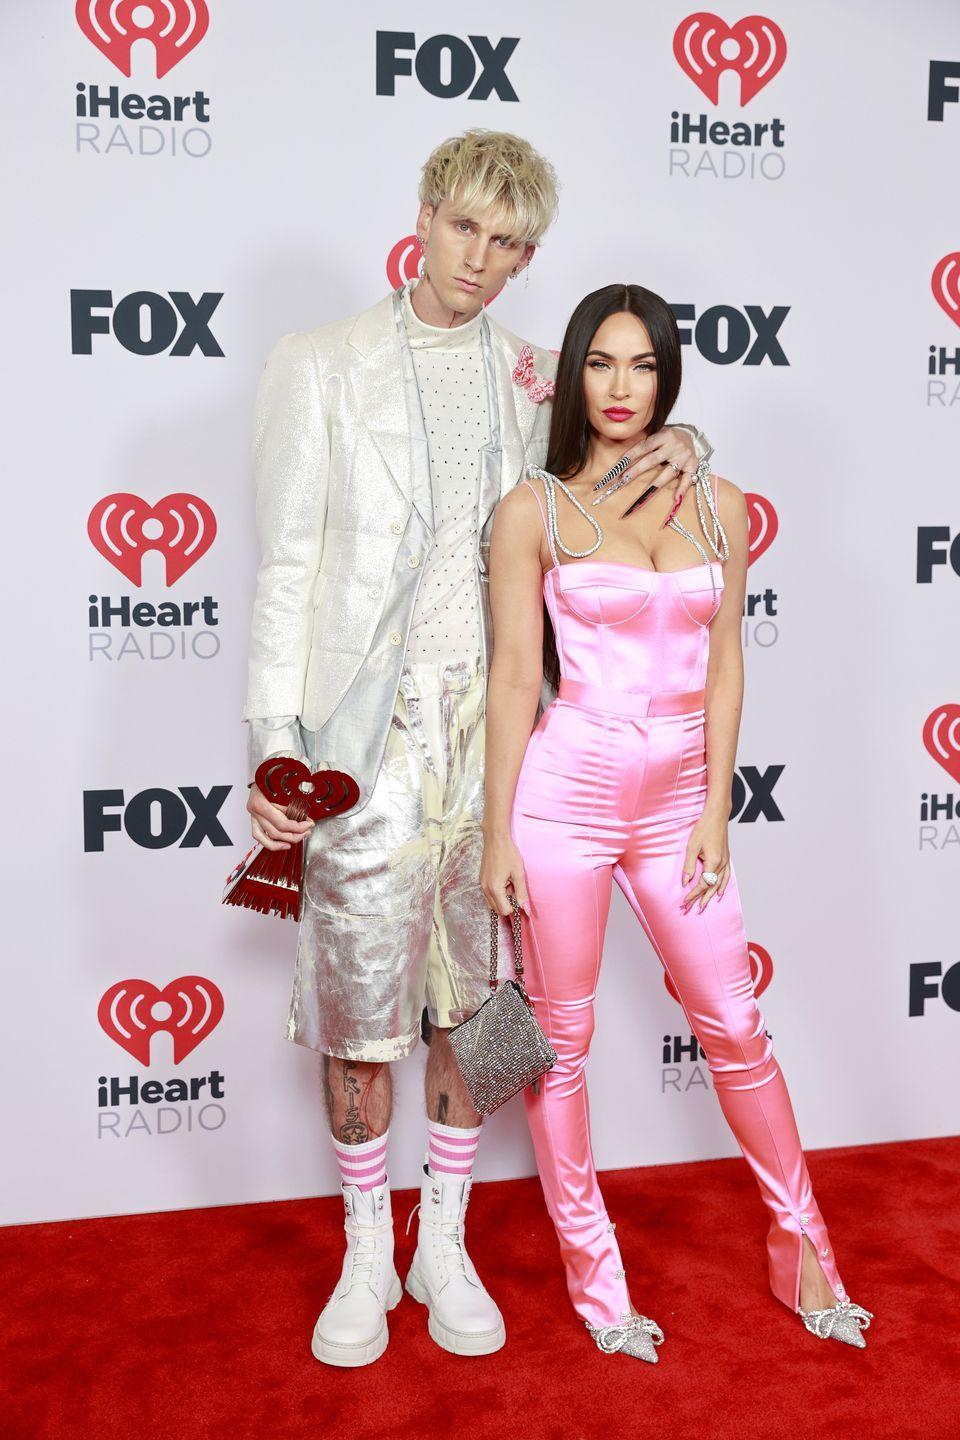 """<p>Fox wore a pink Mach & Mach jumpsuit with silver straps and matching heeled pumps to create this <a href=""""https://www.elle.com/uk/life-and-culture/a36565497/megan-fox-machine-gun-kelly-pink-outfits-iheartradio-music-awards-2021/"""" rel=""""nofollow noopener"""" target=""""_blank"""" data-ylk=""""slk:Barbie-inspired look"""" class=""""link rapid-noclick-resp"""">Barbie-inspired look</a>. </p>"""